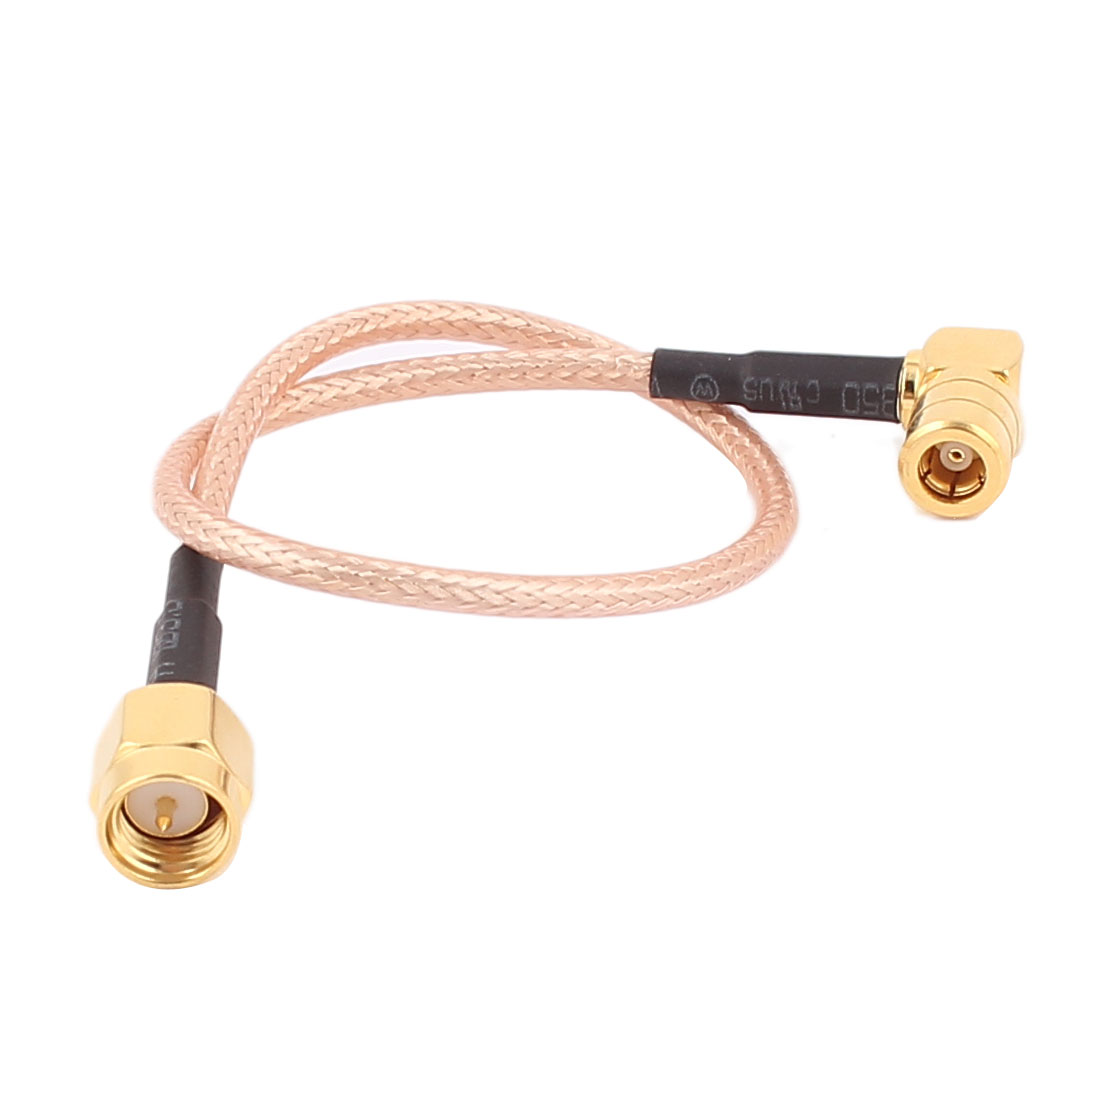 SMB-TKW Female to SMA-J Male RG316 Coaxial Cable Pigtail 20cm